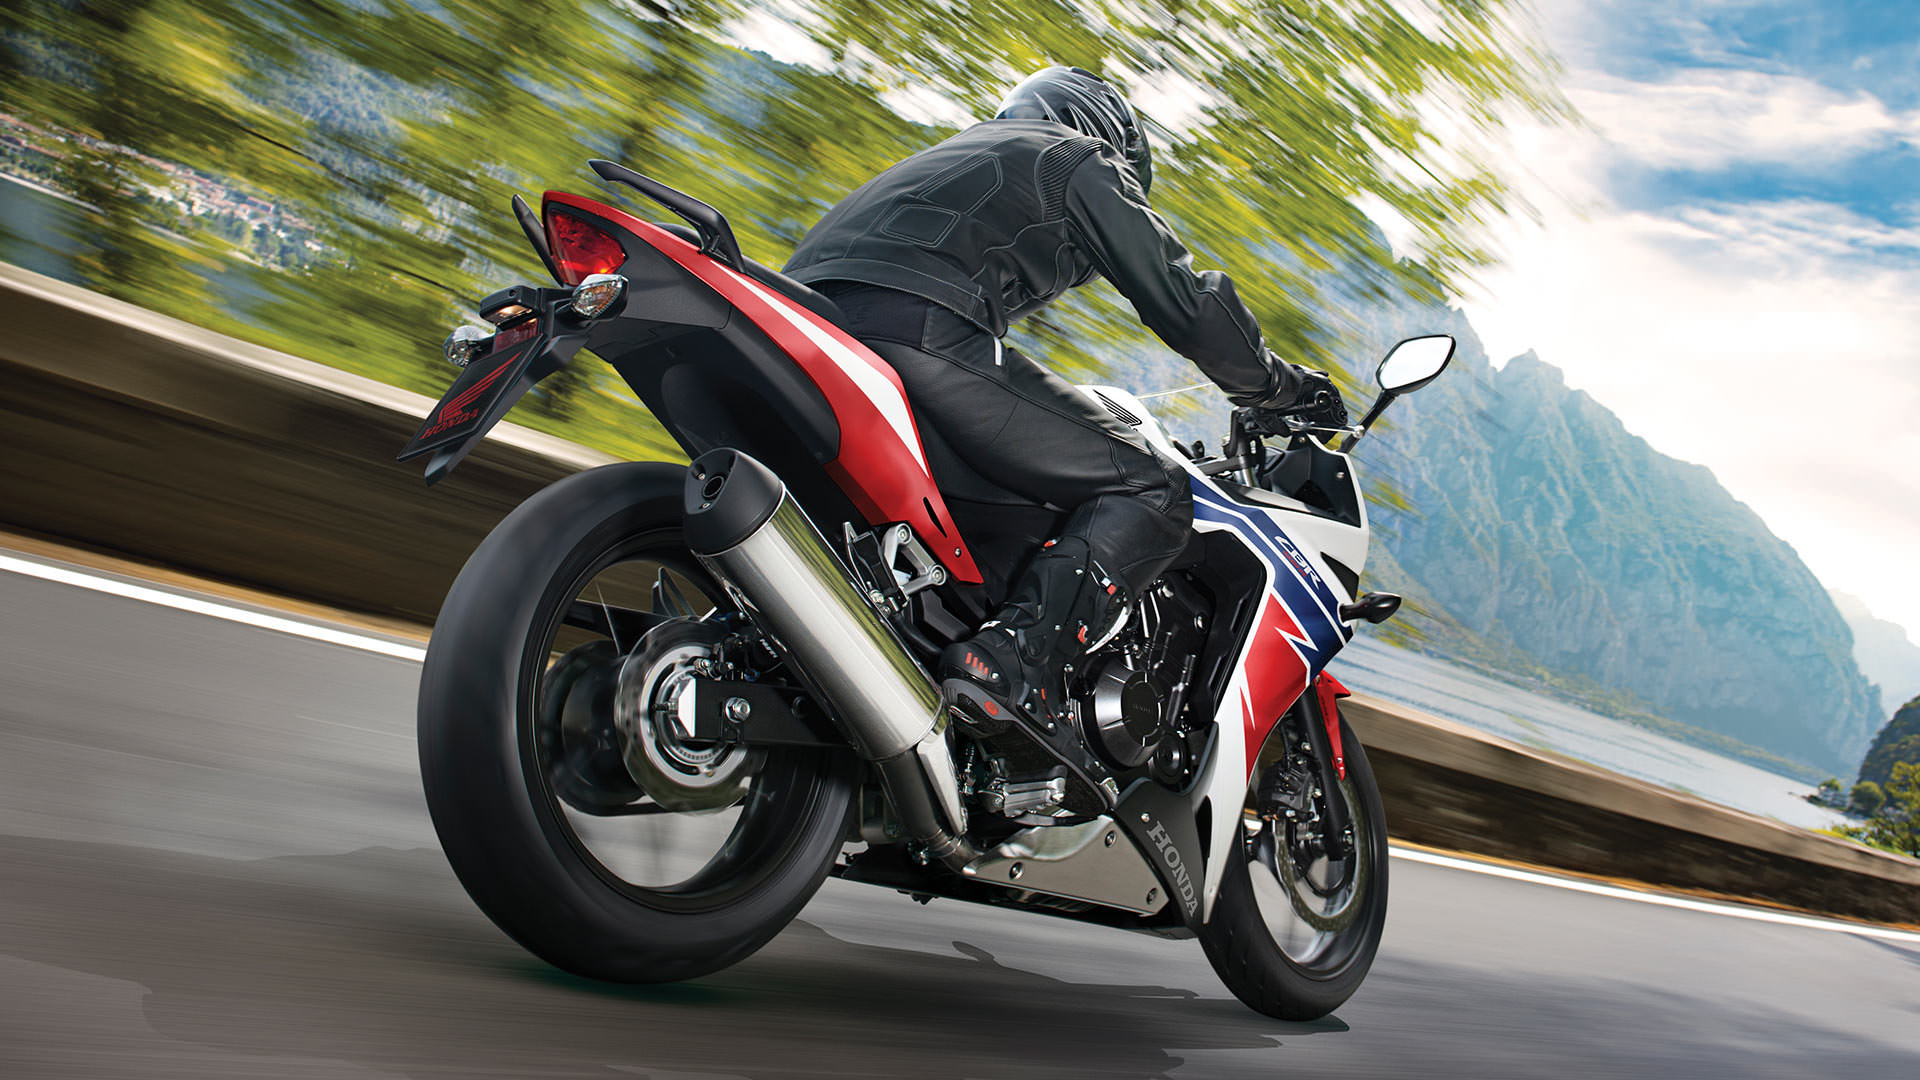 2014 Honda Cbr500r Review Specs Pictures Amp Videos